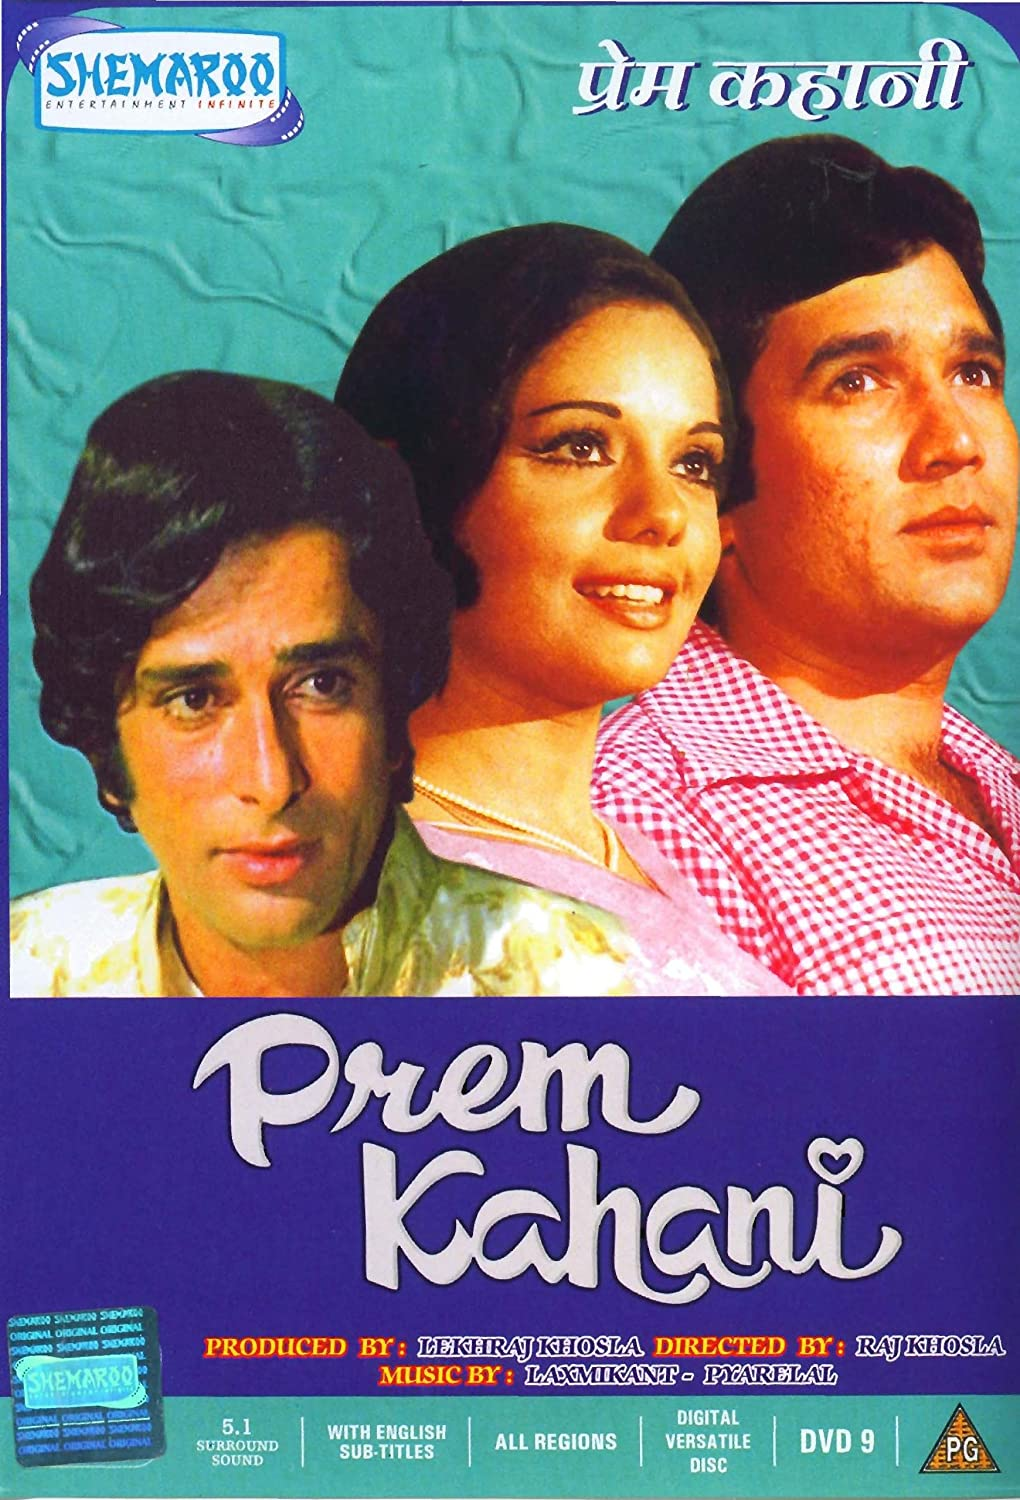 Amazon.in: Buy Prem Kahani DVD, Blu-ray Online at Best Prices in India |  Movies & TV Shows